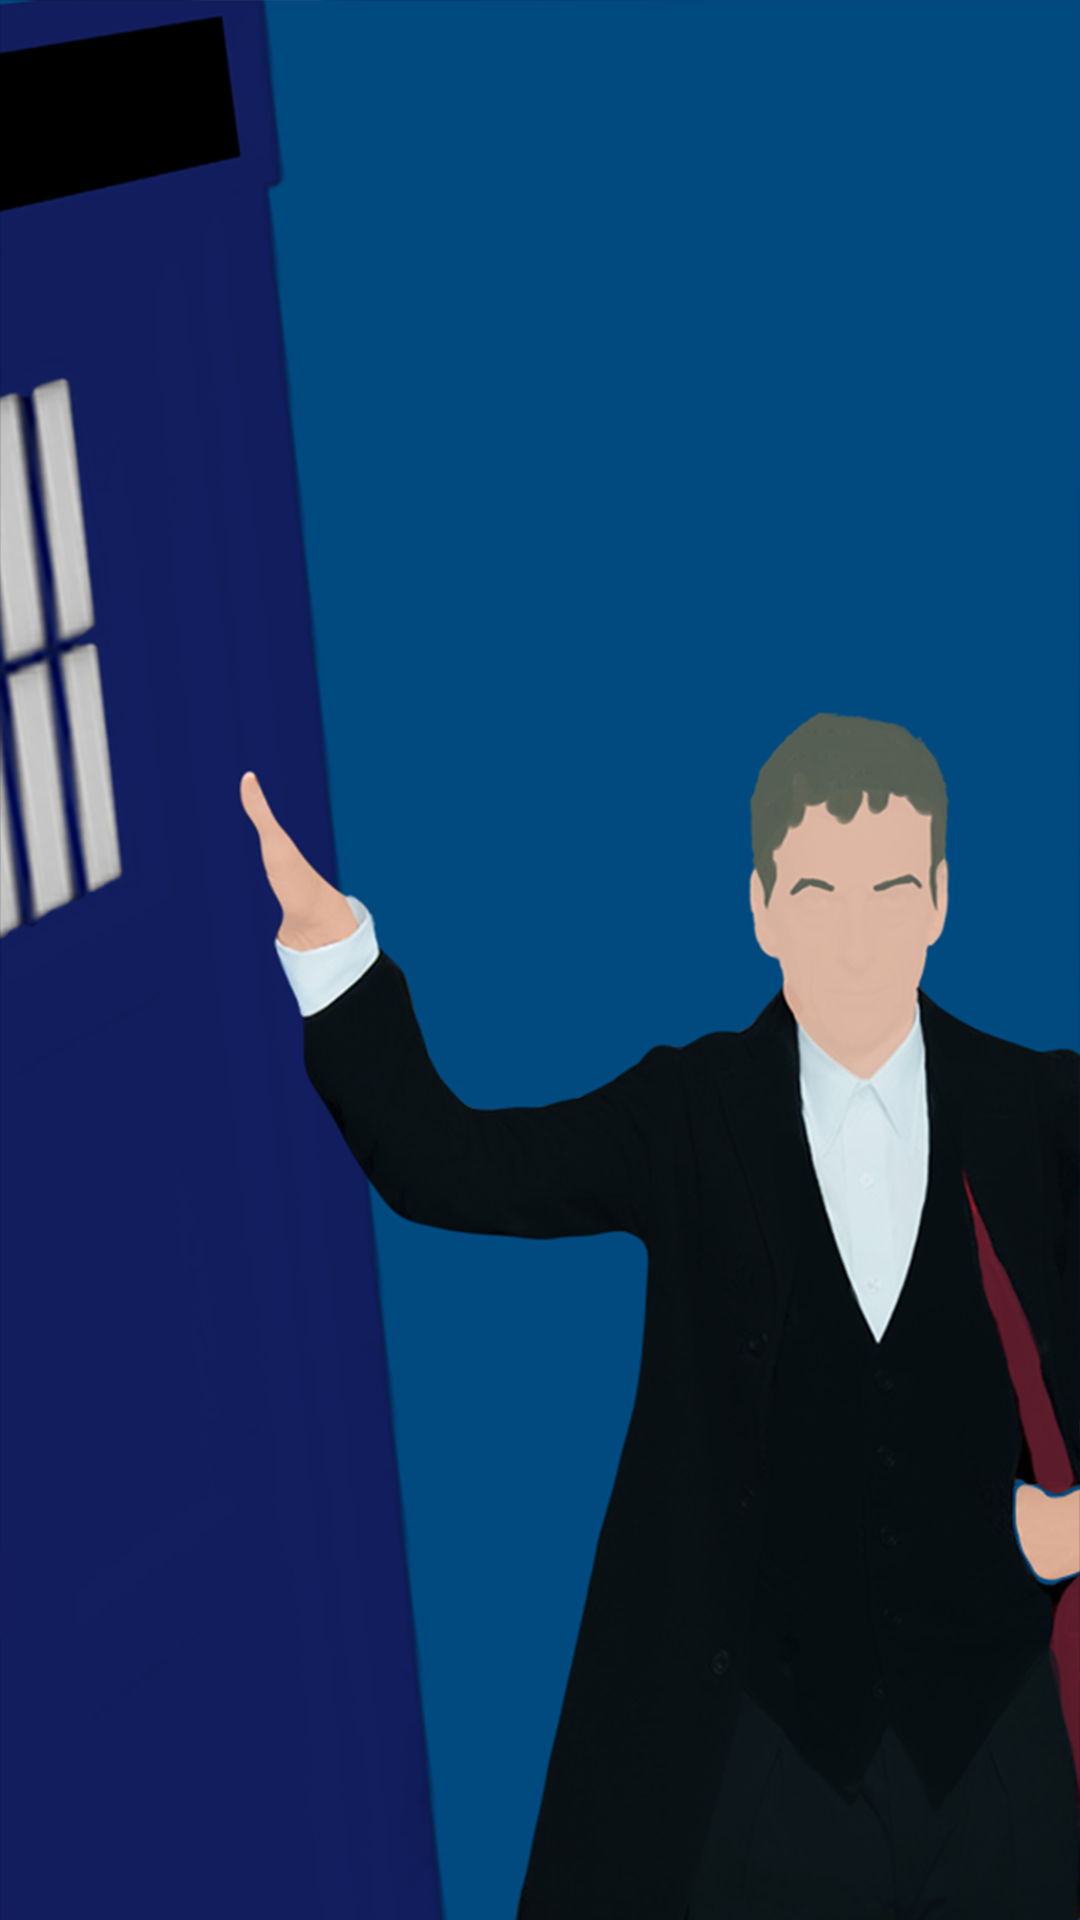 these minimalistic Season 8 Doctor Who wallpapers yBaX START 1080x1920